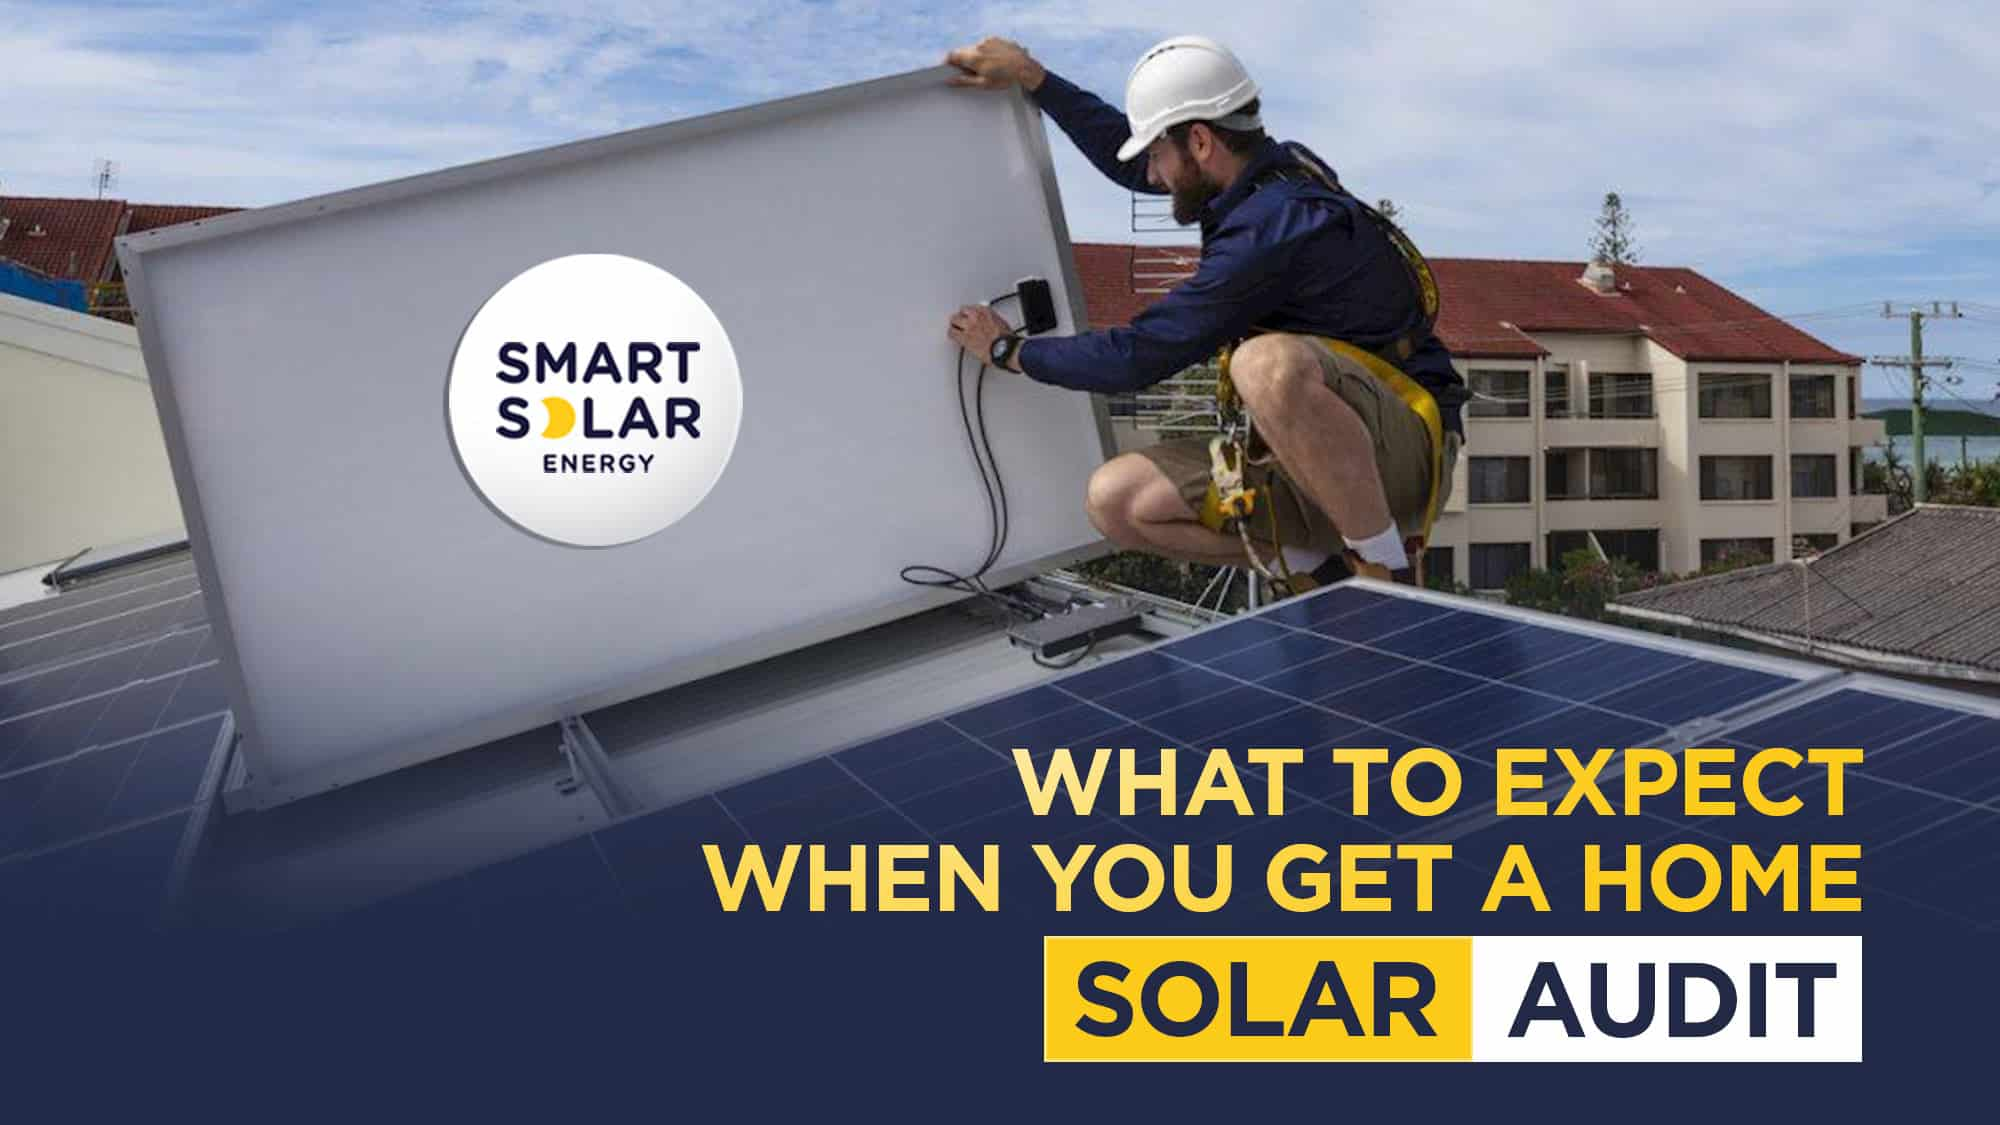 What to expect when you get a home solar audit